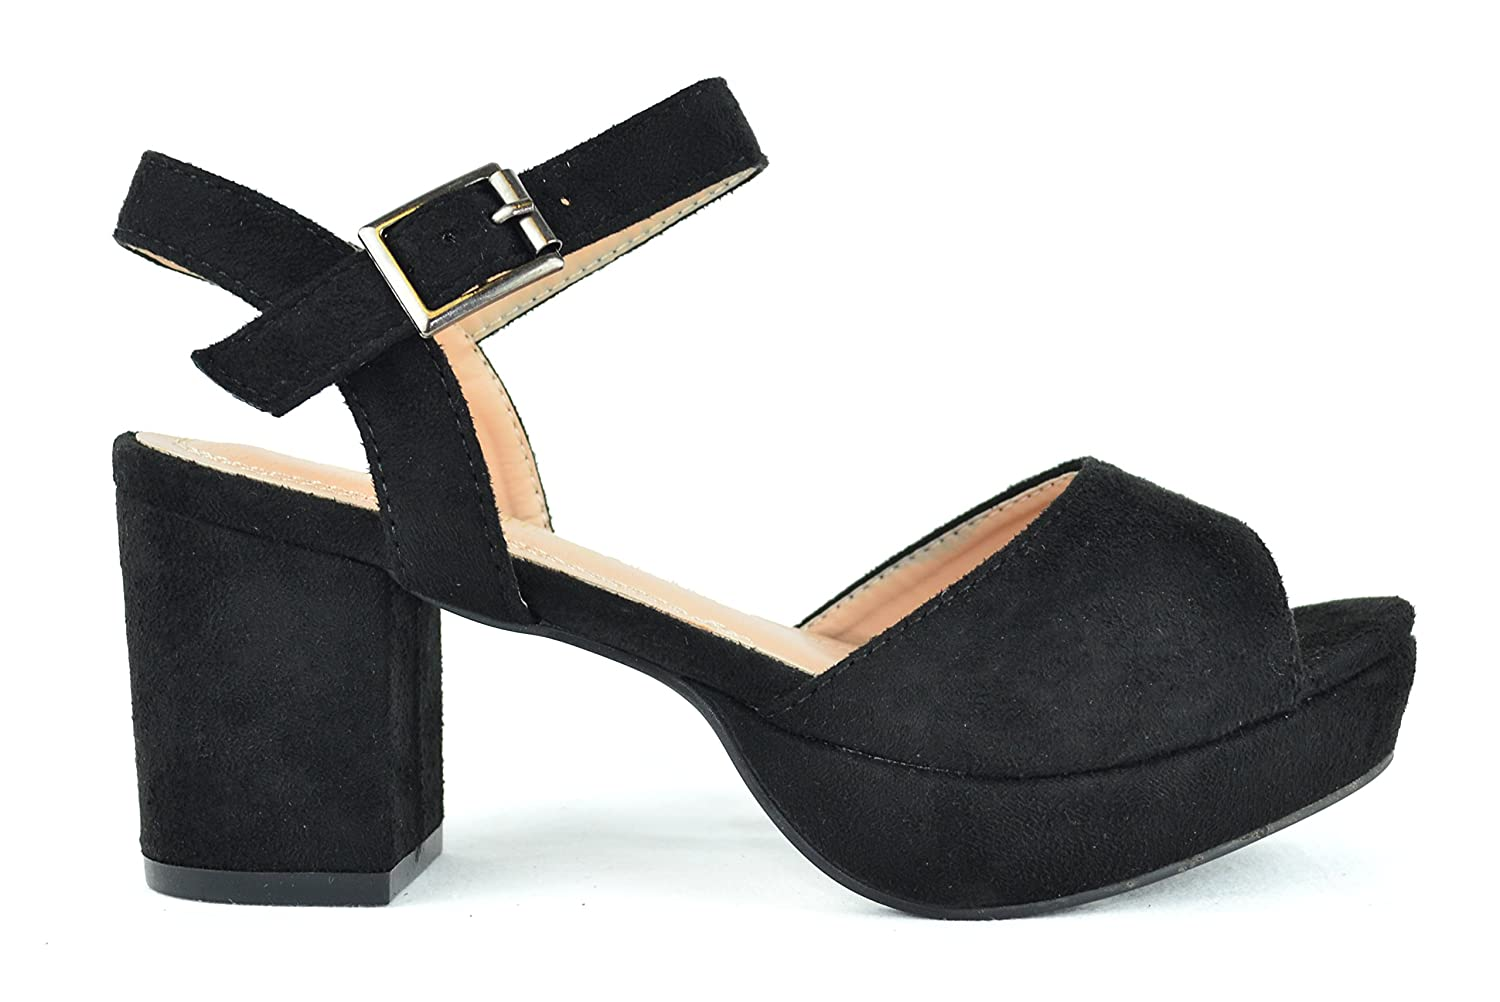 Chase & Chloe Drama 1 Sling Back Ankle Strap Women's Low Platform by Chase & Chloe